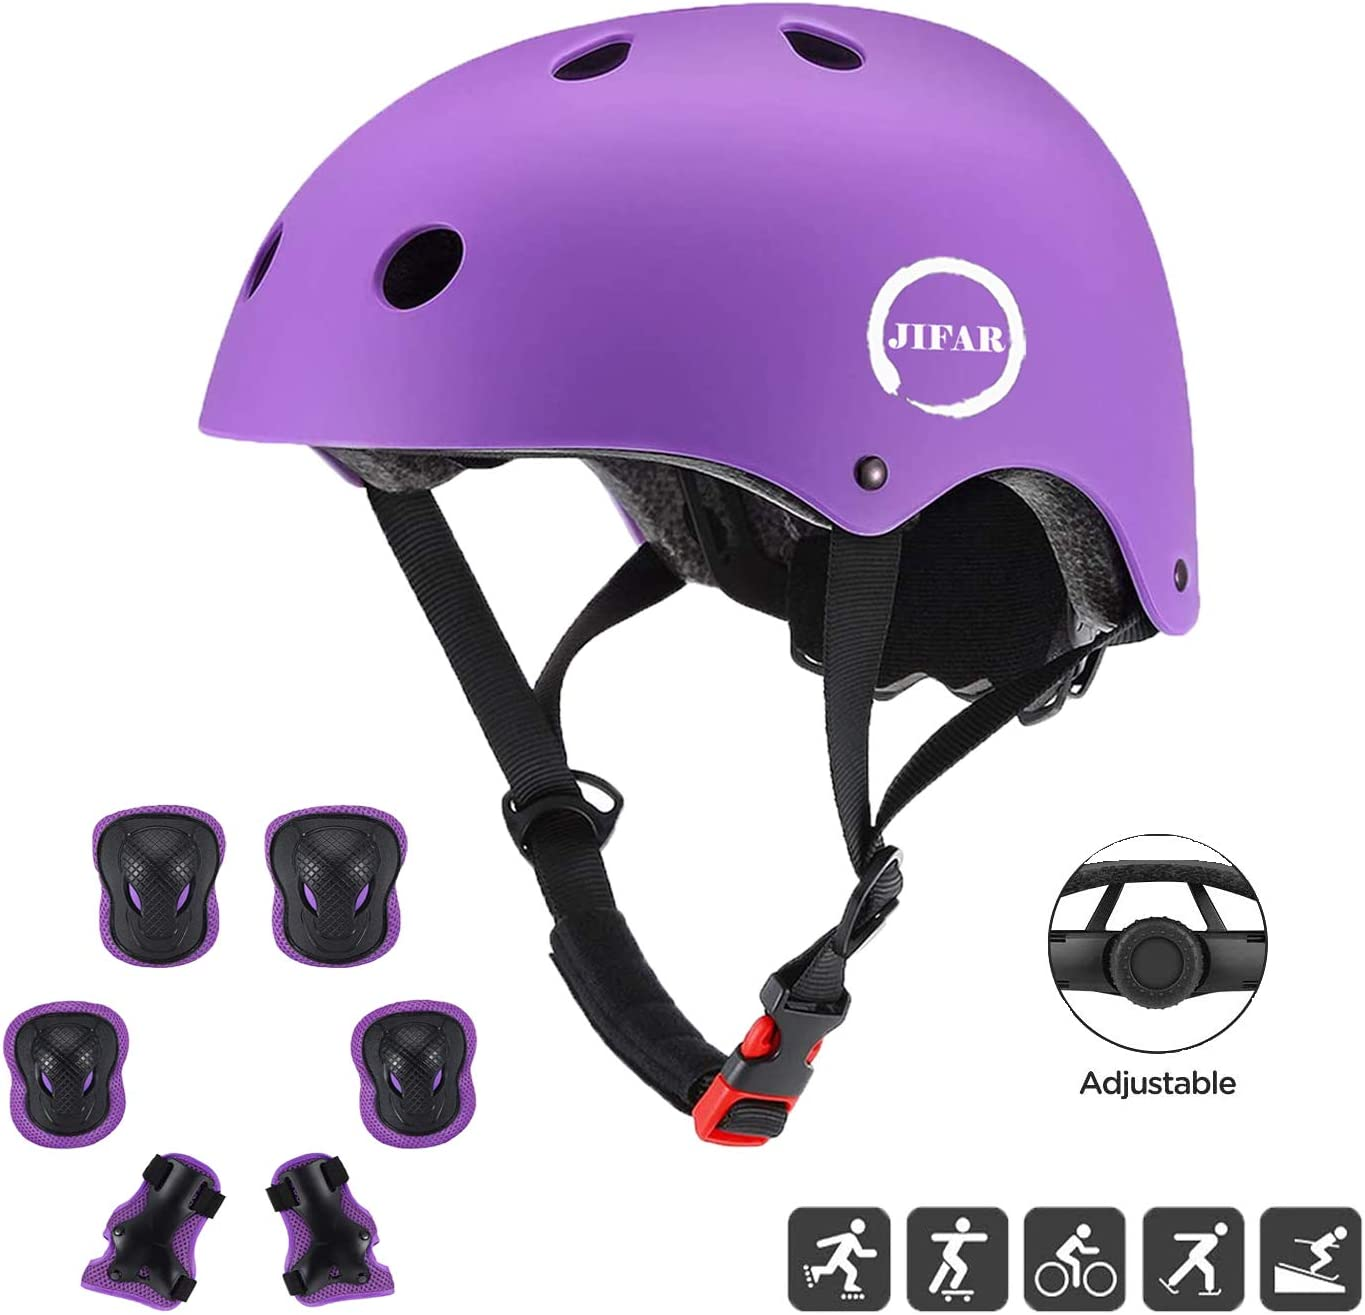 JIFAR Youth Kids Bike Helmet for Ages 3-11, Adjustable Toddler Protective Gear with Elbow Knee Wrist Pads for Skateboarding Bicycling Hiking, S Size for Girls Boys Helmet